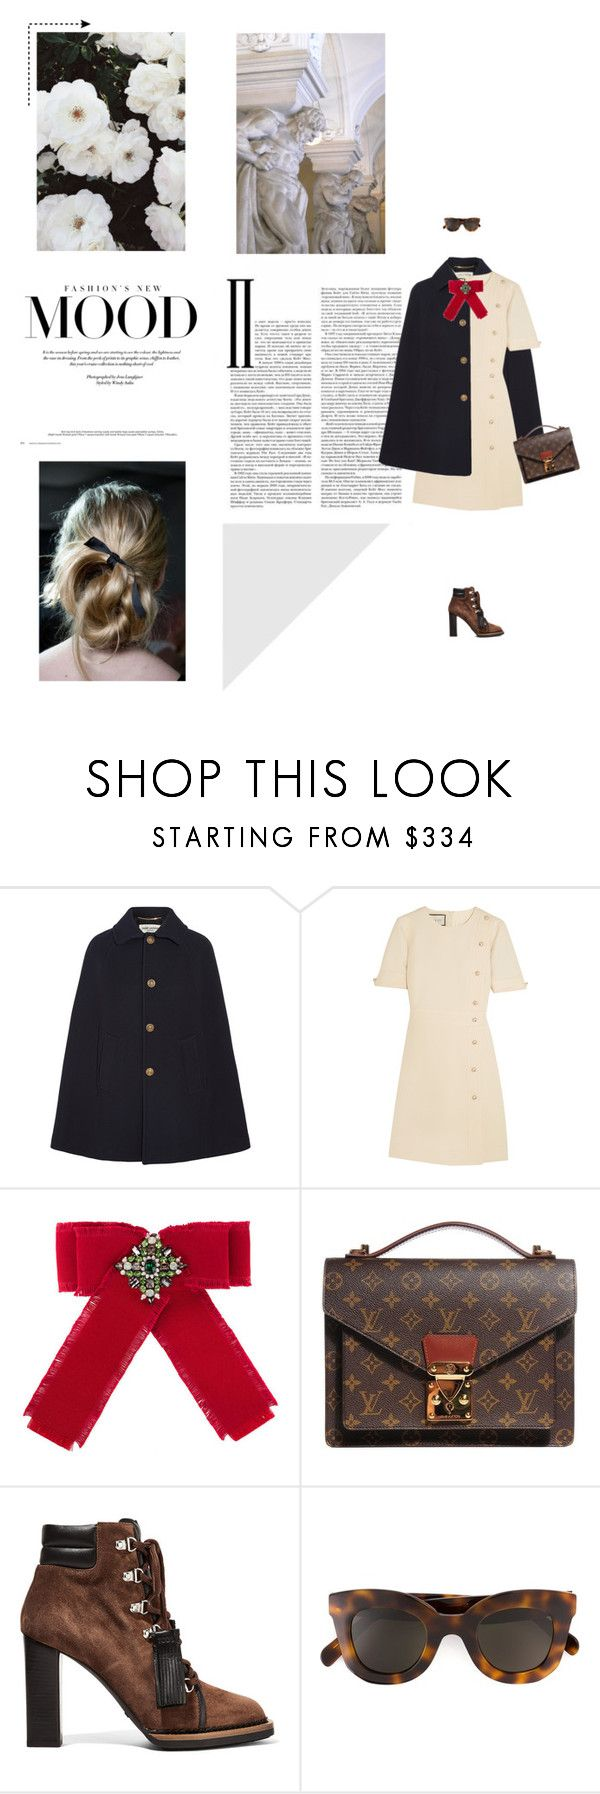 """Prep School"" by homeless-drifter ❤ liked on Polyvore featuring Yves Saint Laurent, Gucci, Louis Vuitton, Tod's, CÉLINE and Zephyr"